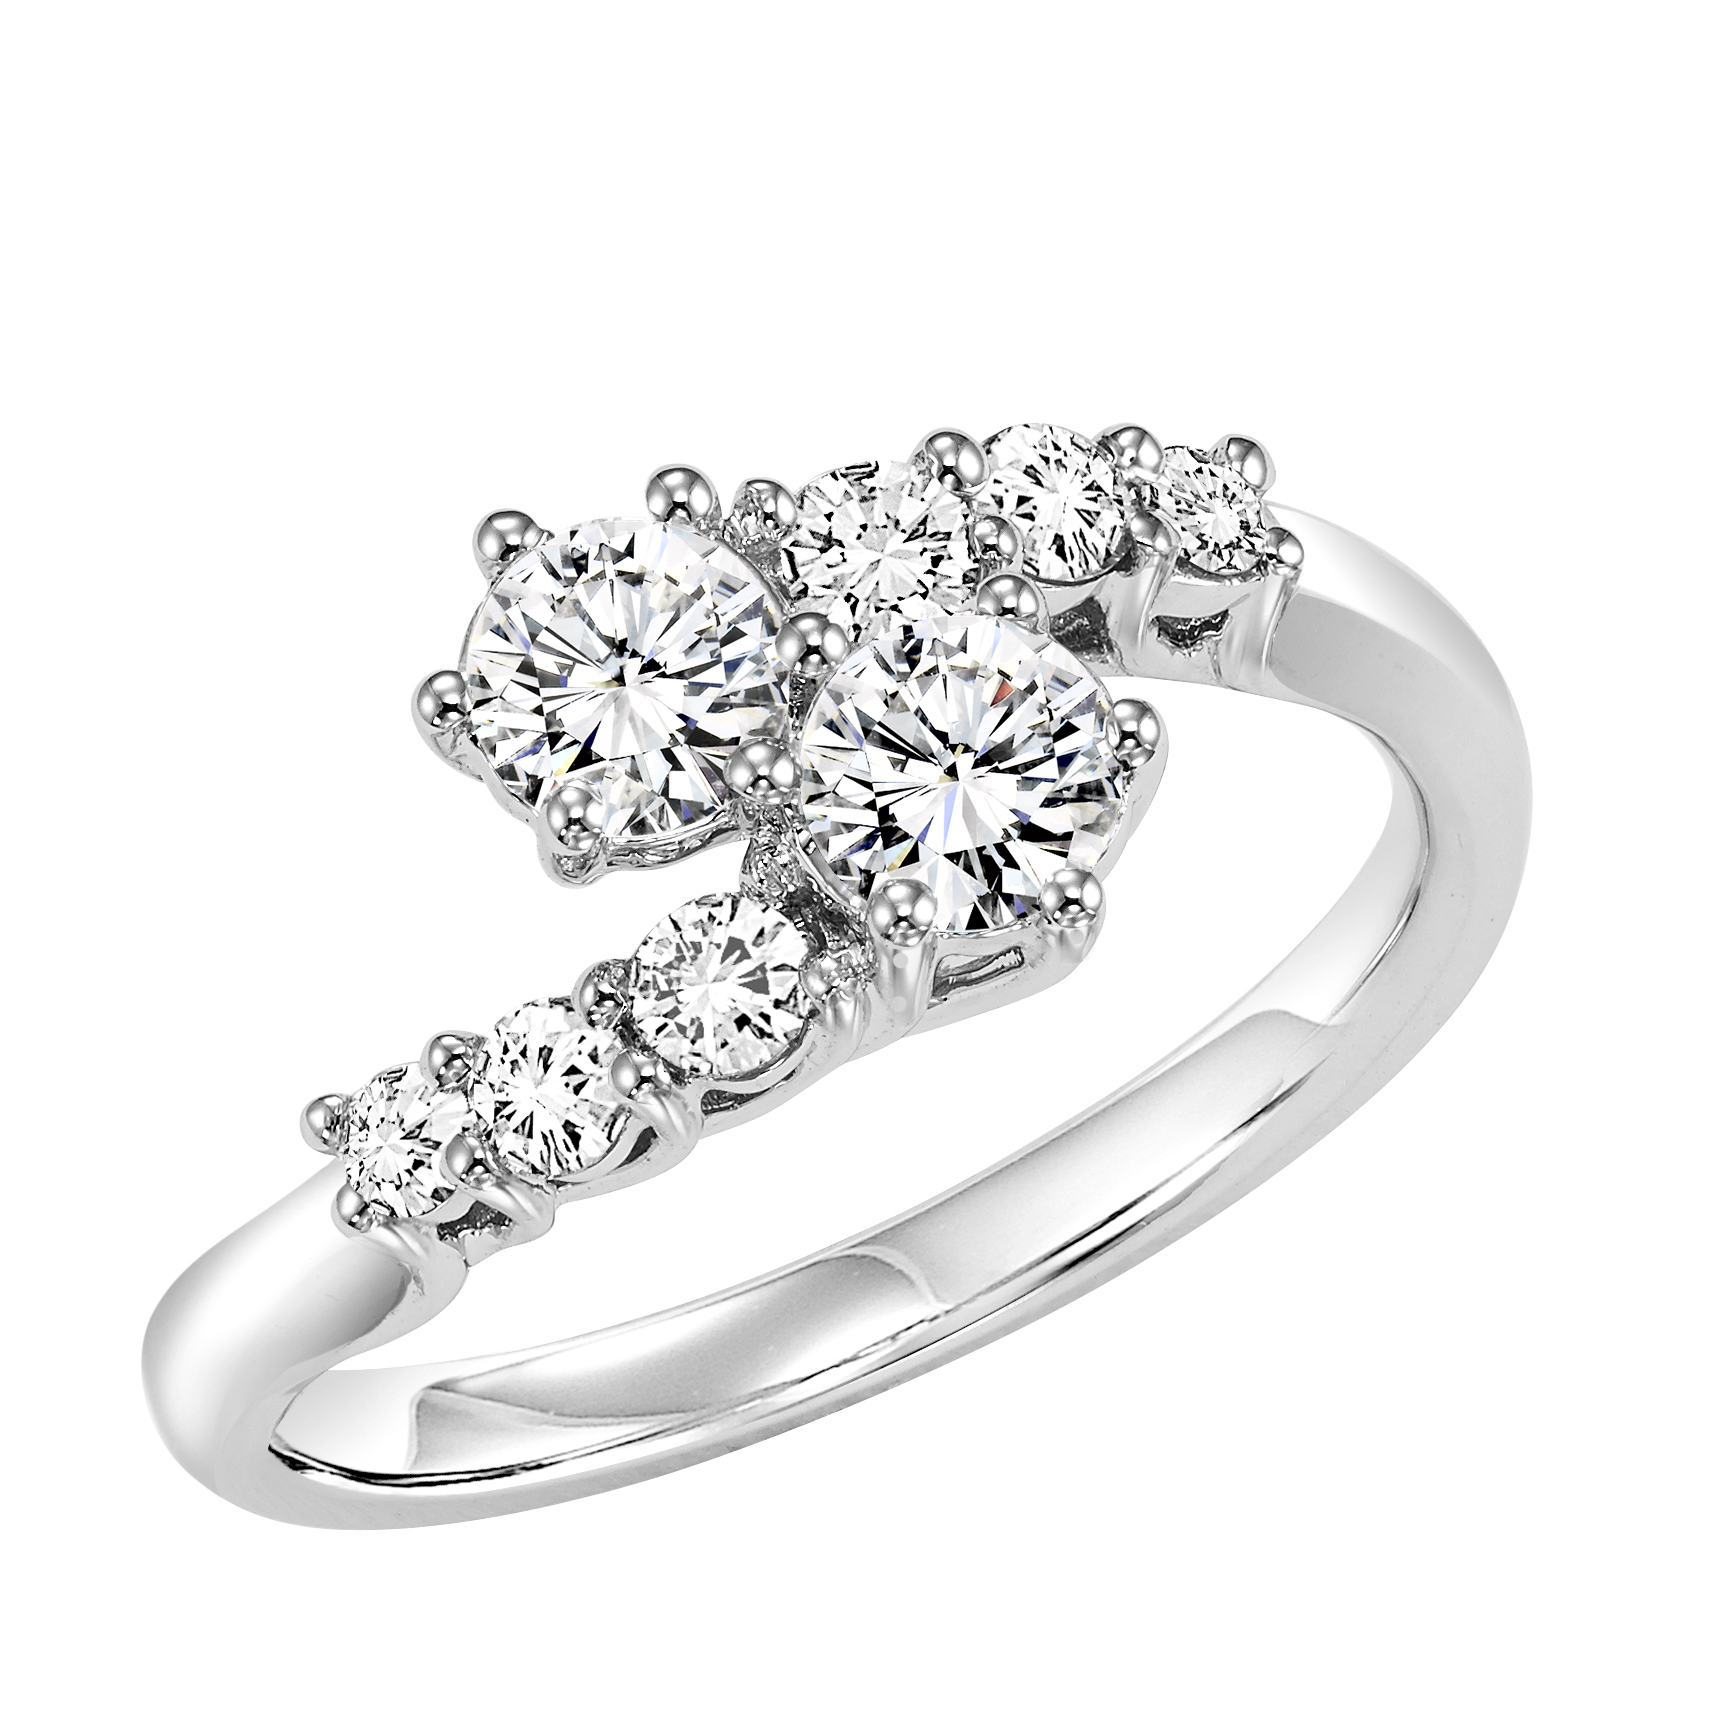 rings gabrielco stone fine images top and on gold engagement jewelry stones halo gabriel bridal pinterest three threestoneengagementrings best preferred ny cushion cut brand our white